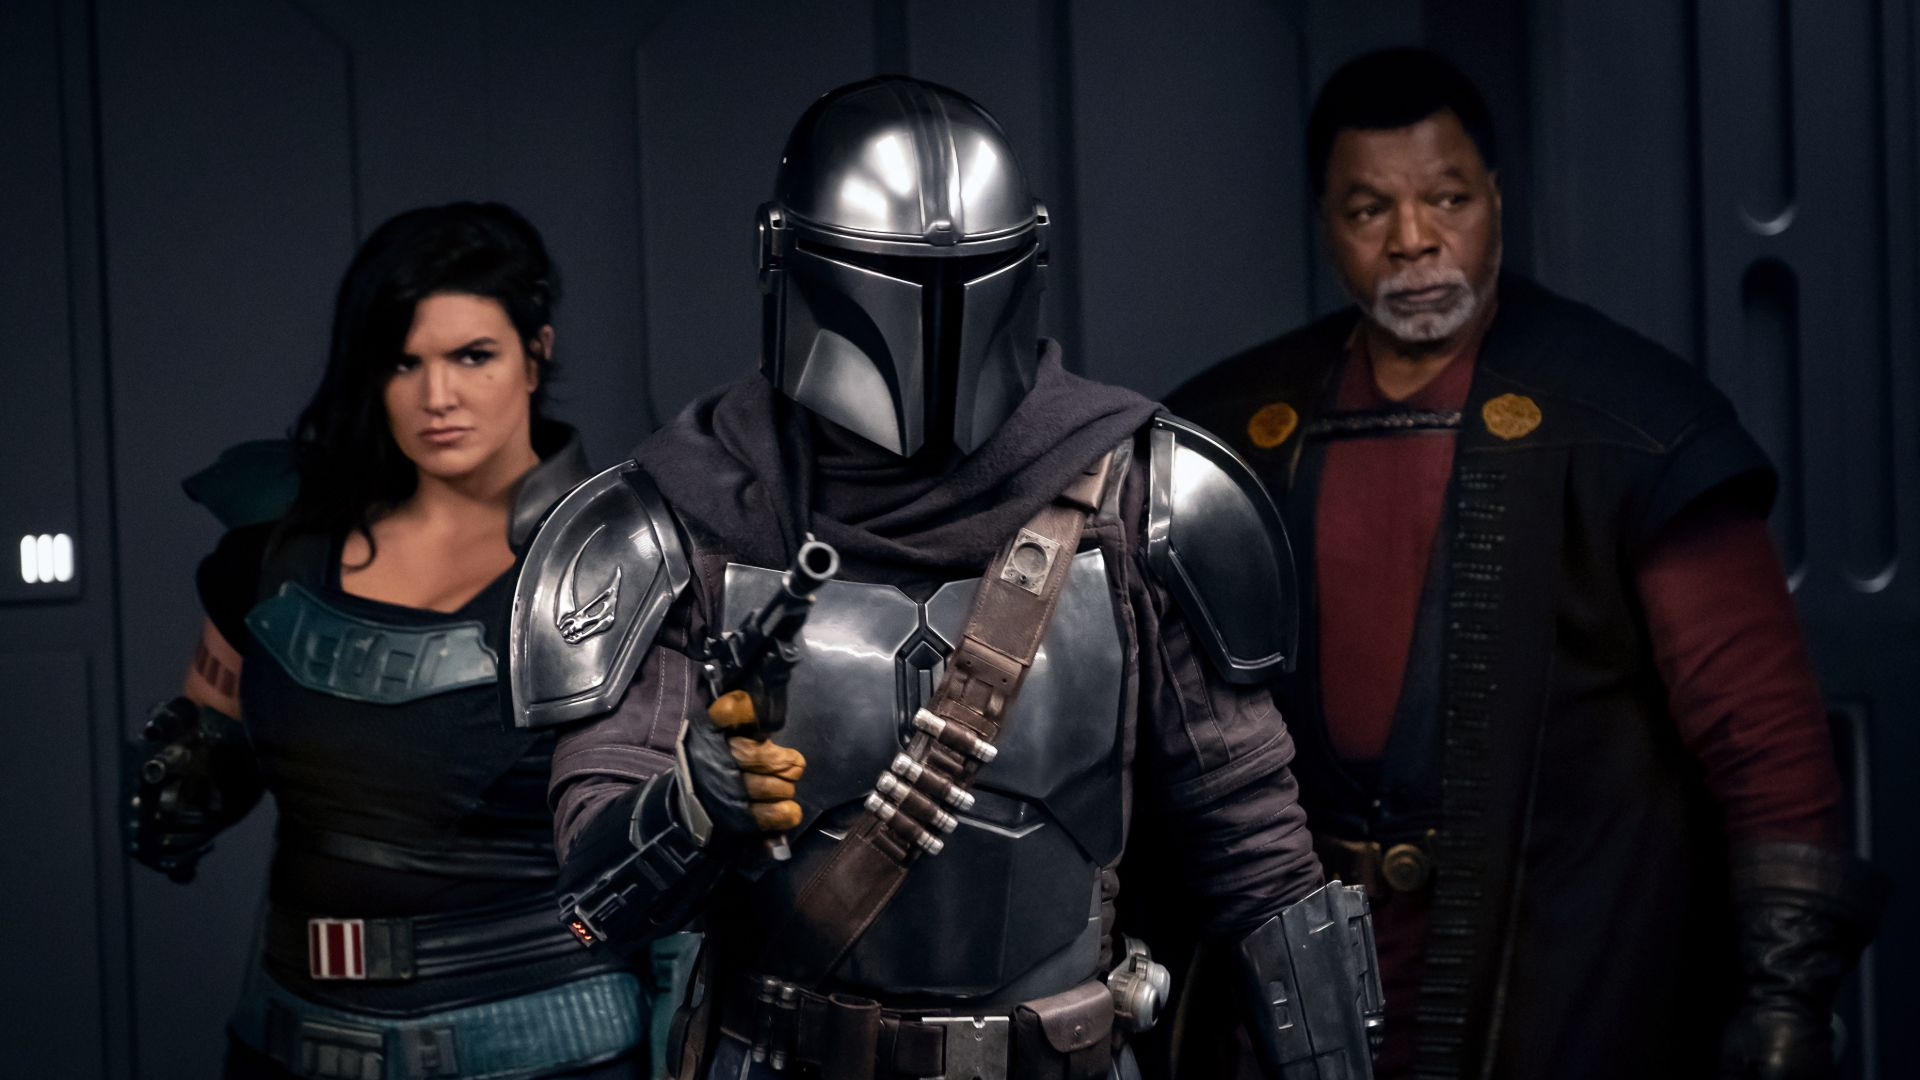 The Mandalorian Season 2 Images Revealed Everything Gets Bigger The Stakes Get Higher Gamesradar